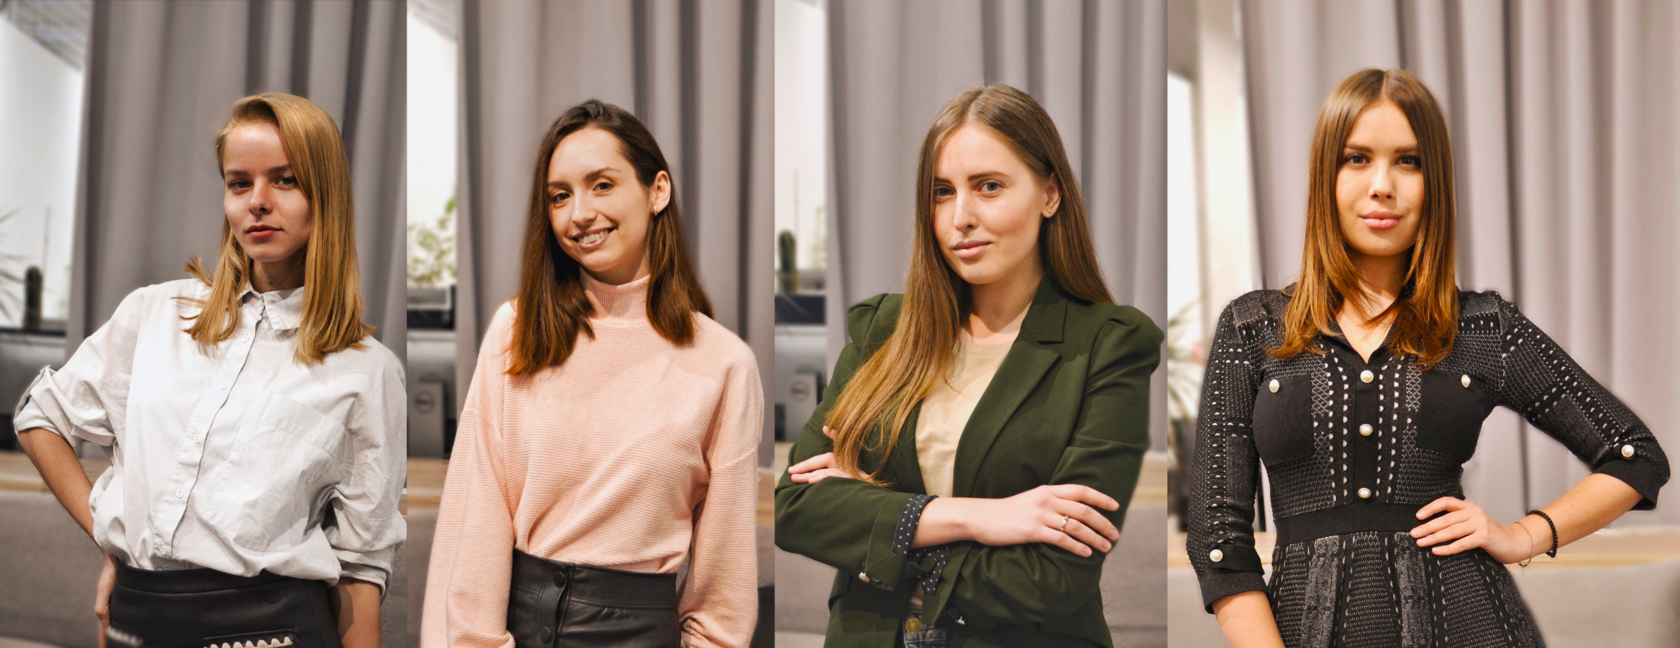 Maria, Julia, Alexandra, Maria, Talent Acquisition Specialists and Talent Analyst,  Genesis Investments